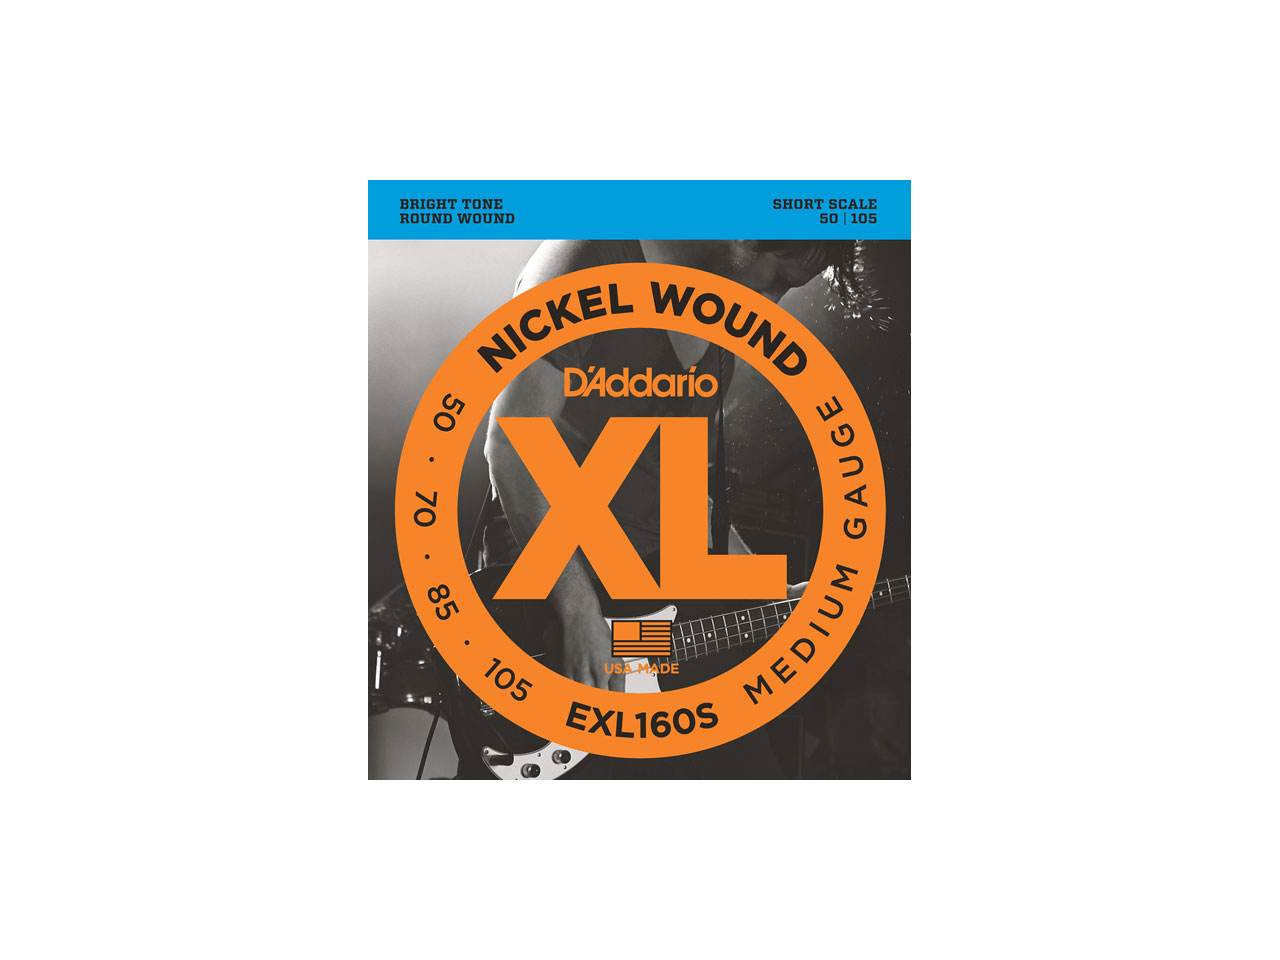 D'Addario(ダダリオ) XL Nickel Round Wound , Short Scale , Medium / EXL160S (エレキベース弦)